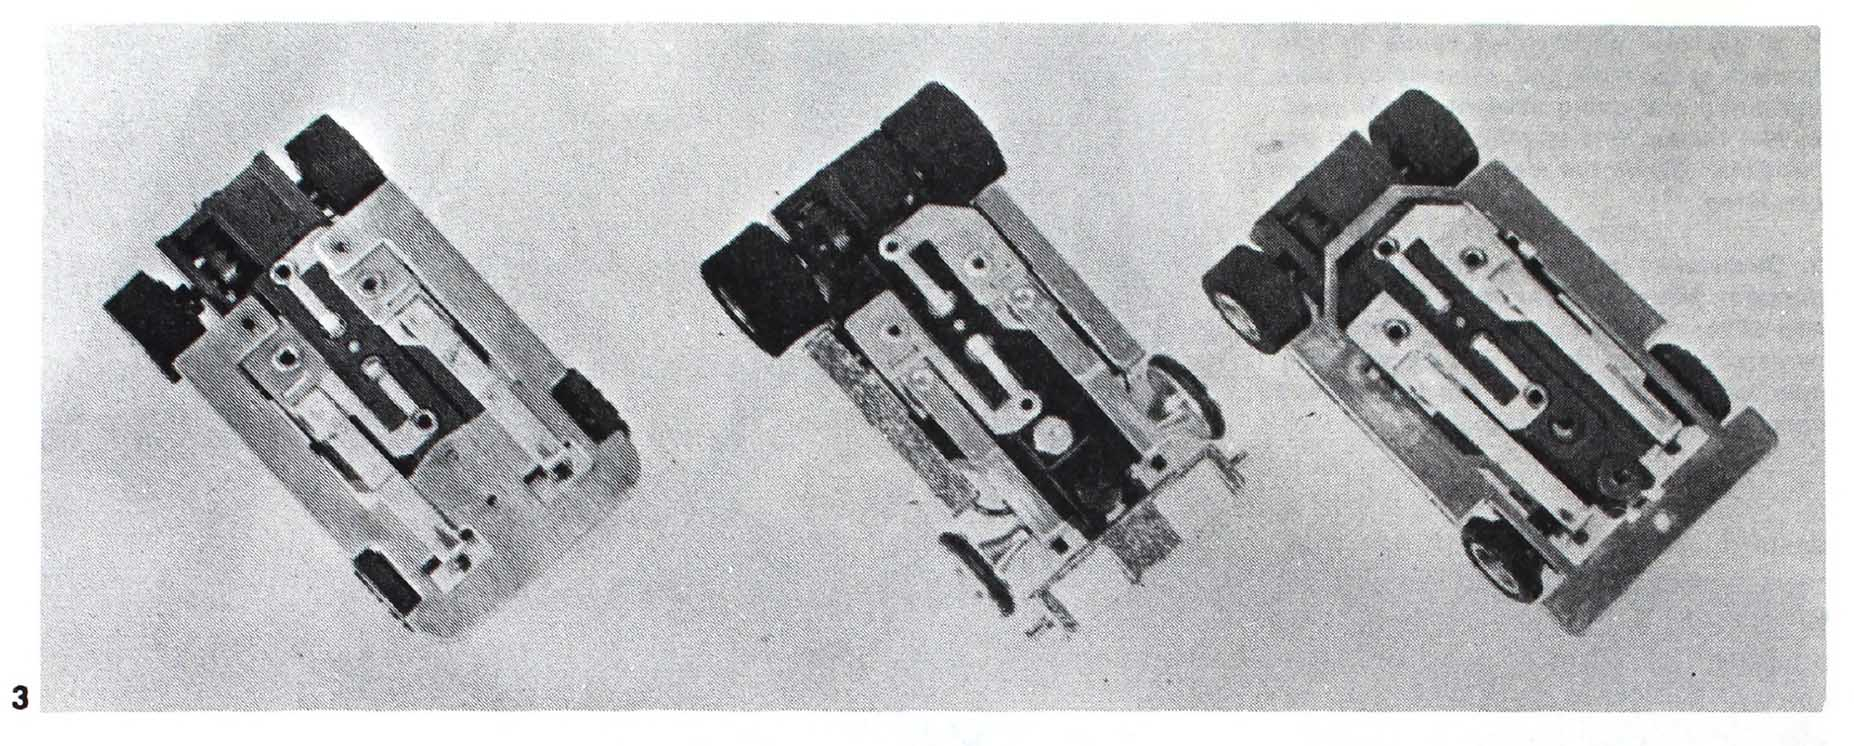 Electrical Device - BASIC RACING FACTS